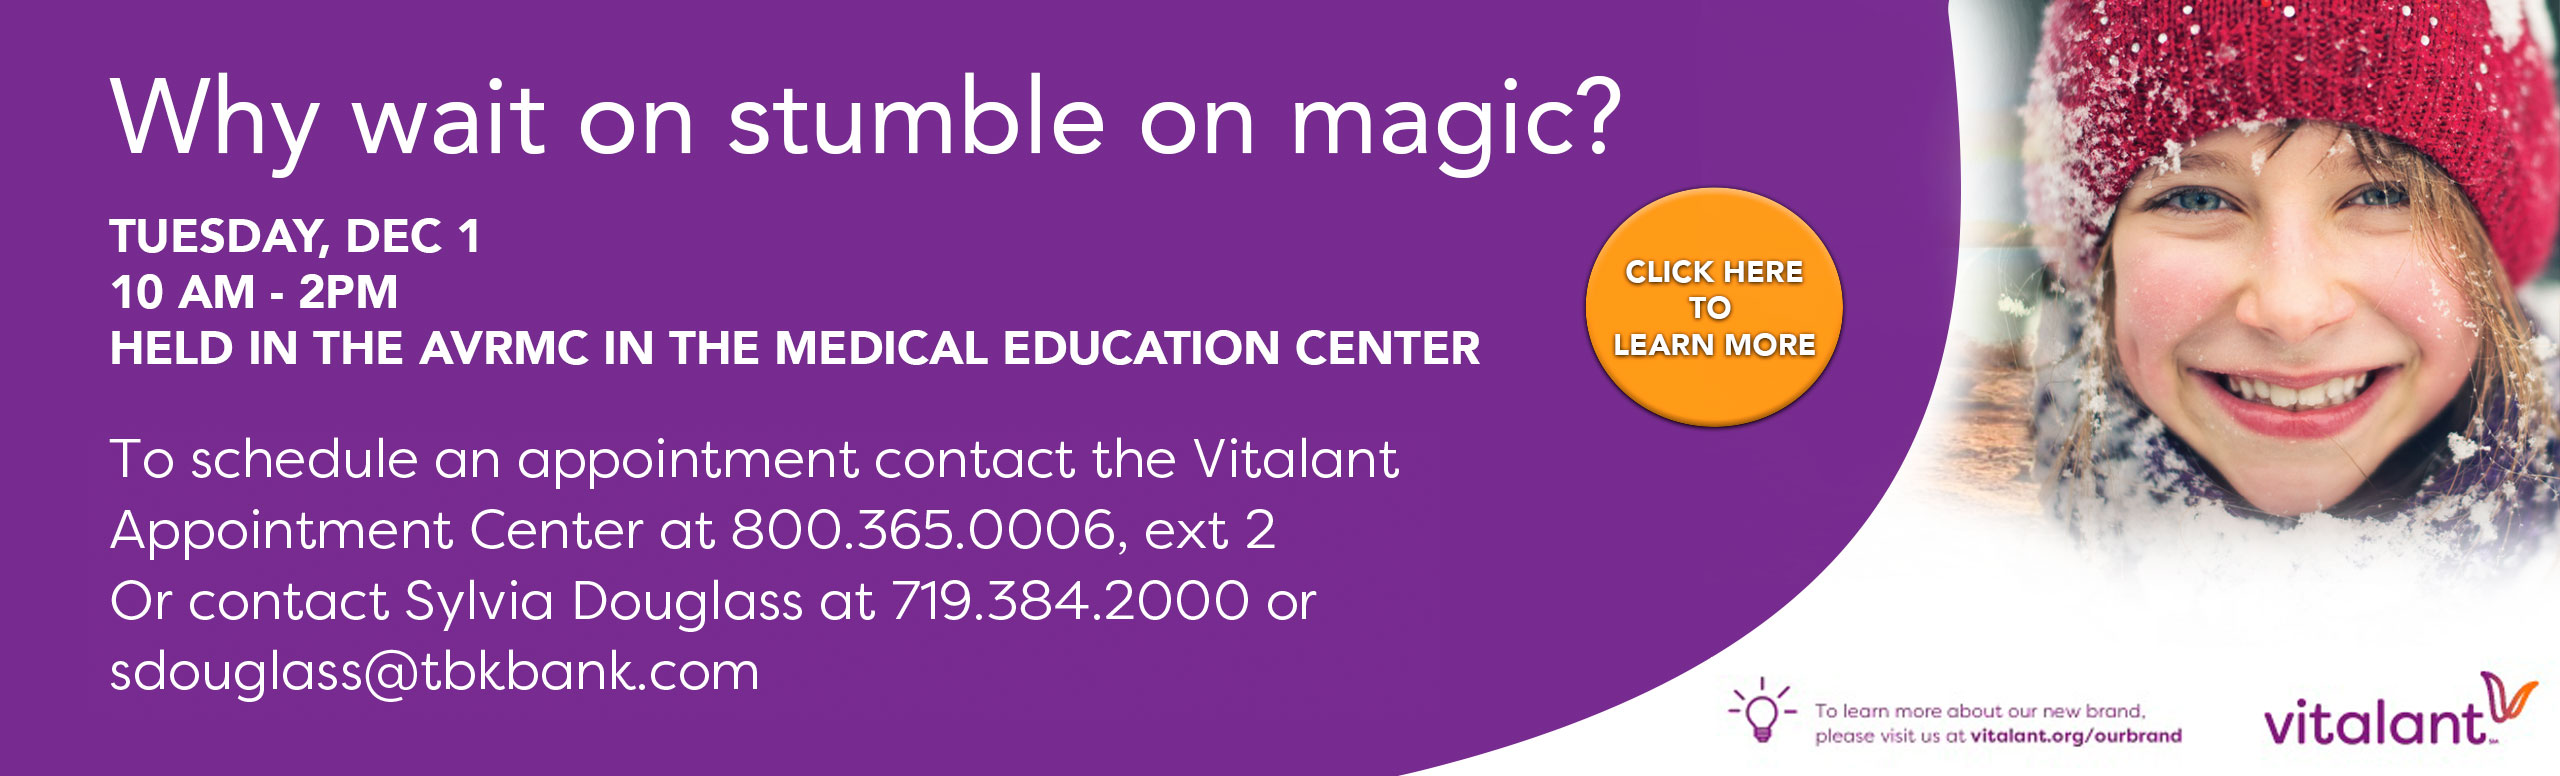 Why wait on stumble on magic?  Tuesday Dec 1st. 10- am - 2 pm. Held in the AVRMC in the Medical Education Center.  To Schedule an appointment contact the Vitalant Appointment Center at 800-365-0006 ext. 2 or contact Sylvia Douglass at 719-384-200 or sdouglass@tbkbank.com